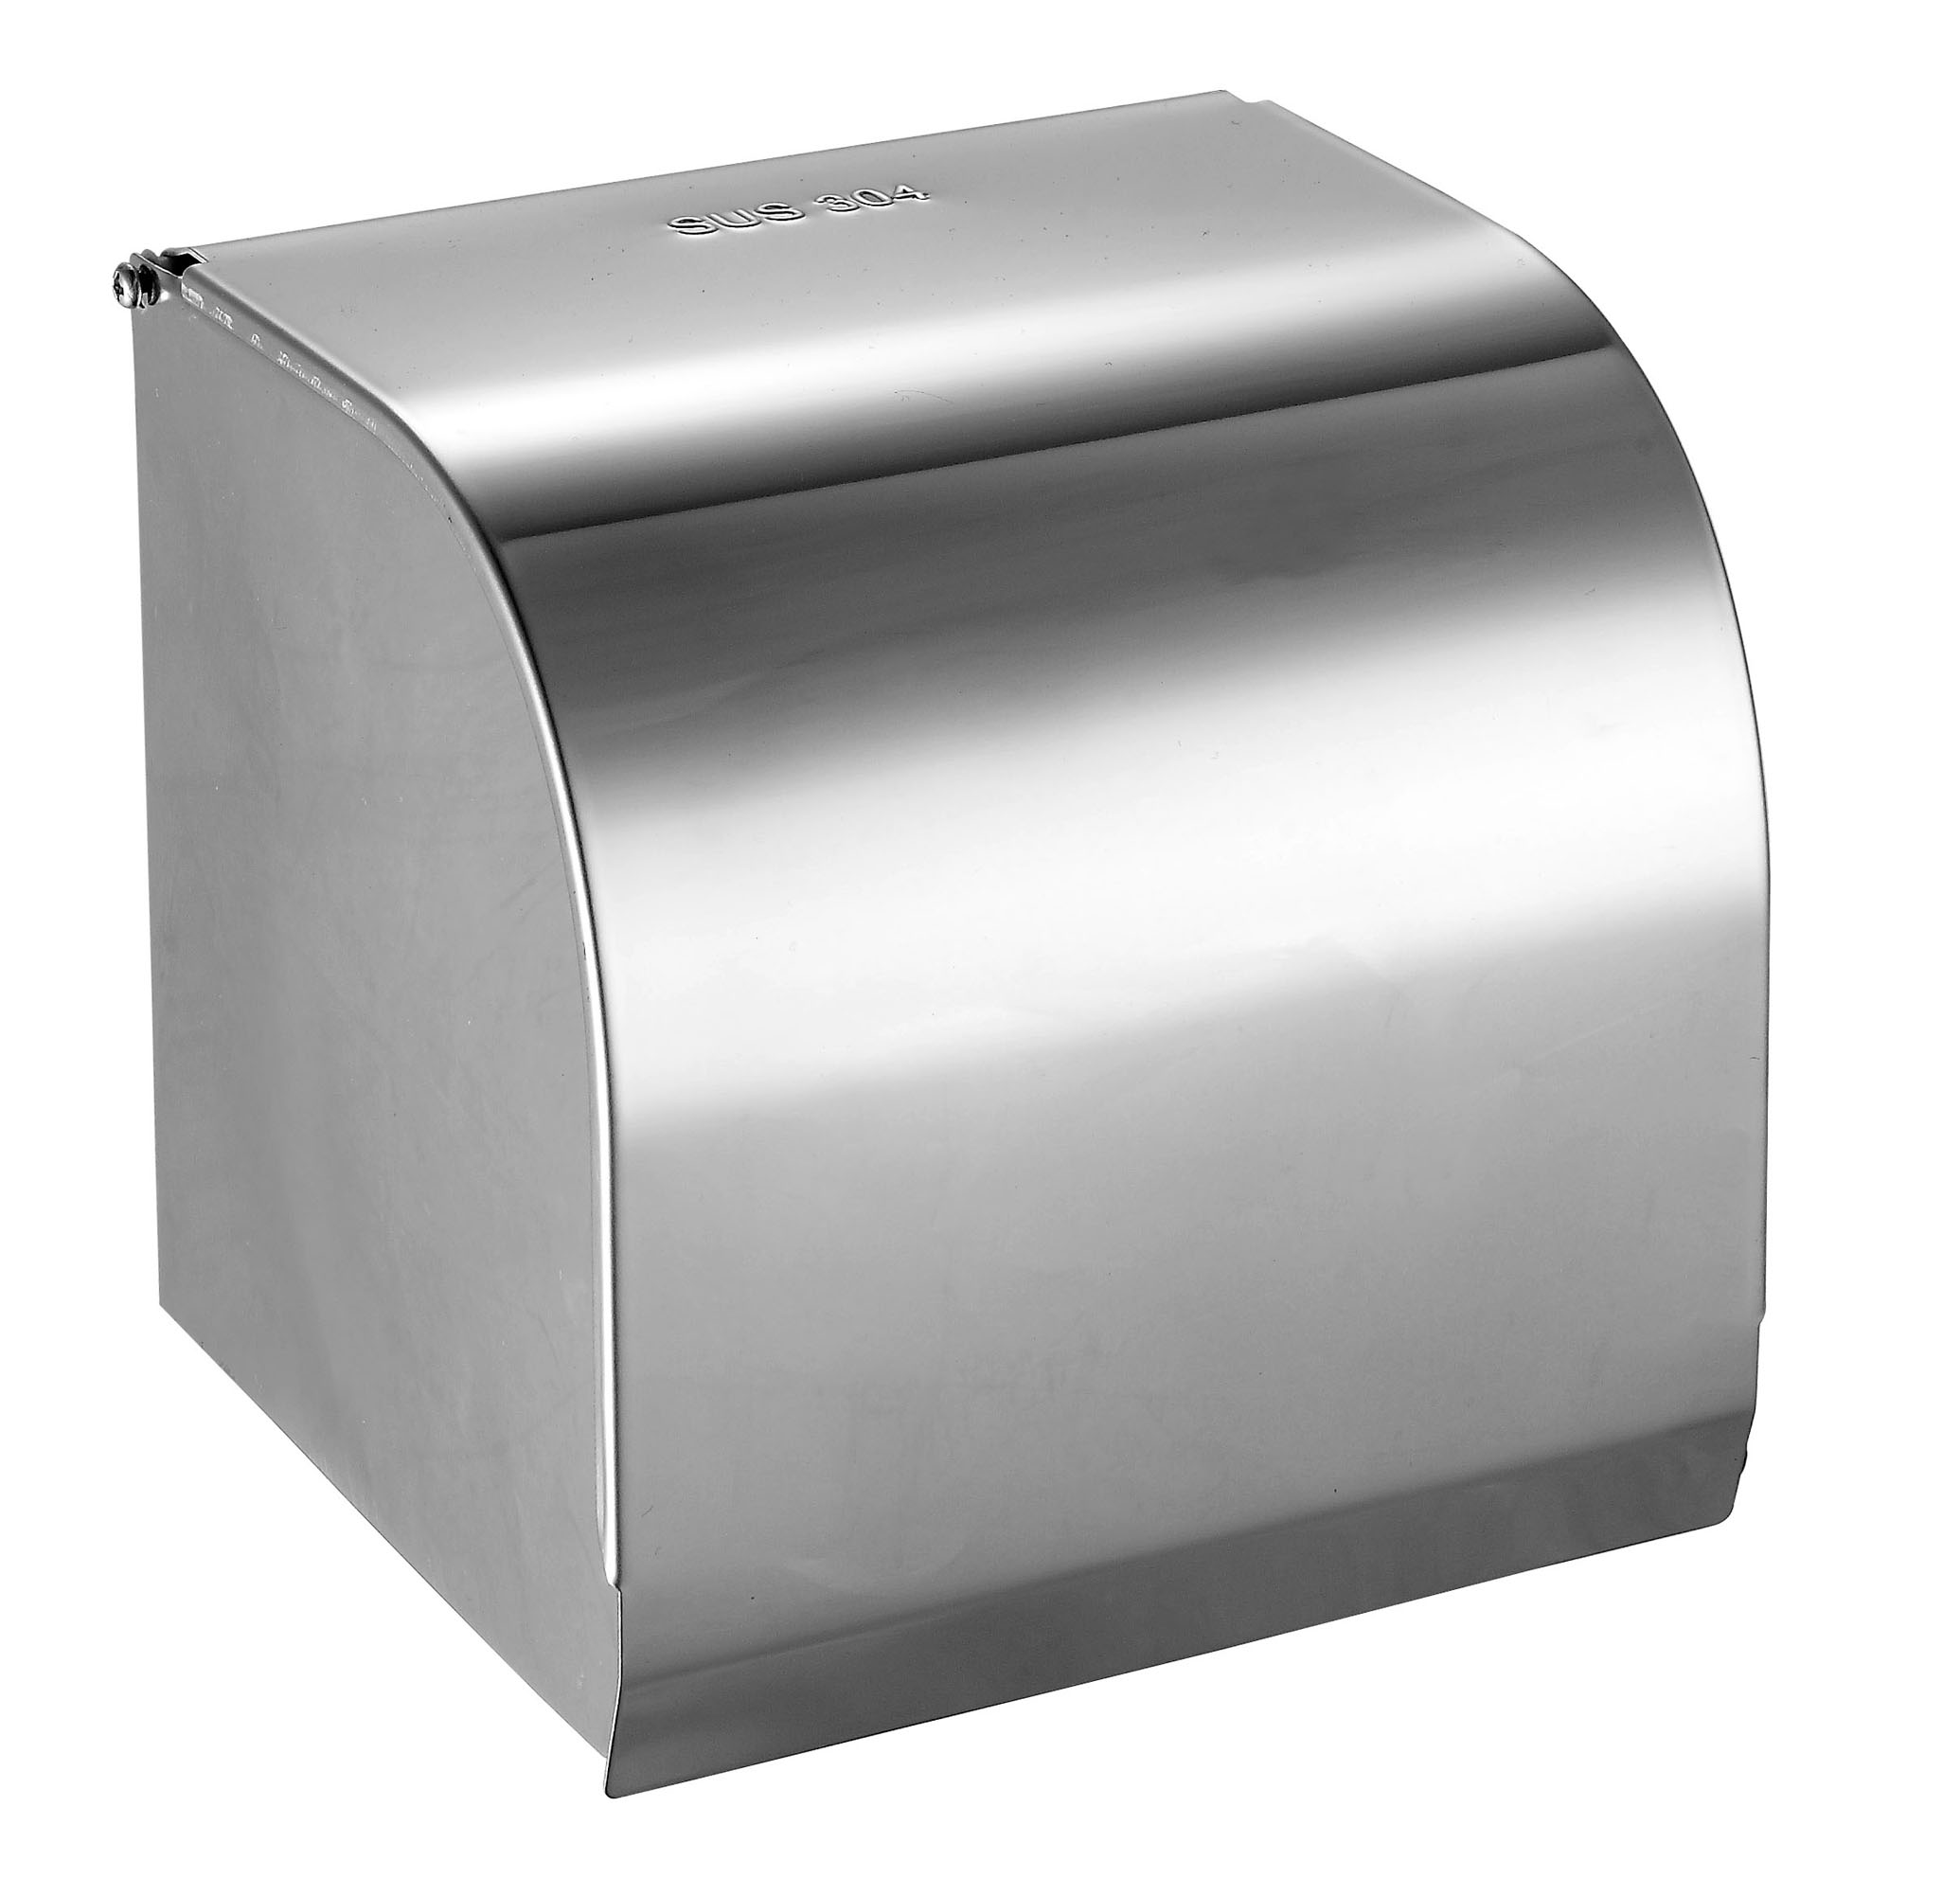 Stainless steel toilet paper holder,Bathroom Accessories tissue holder